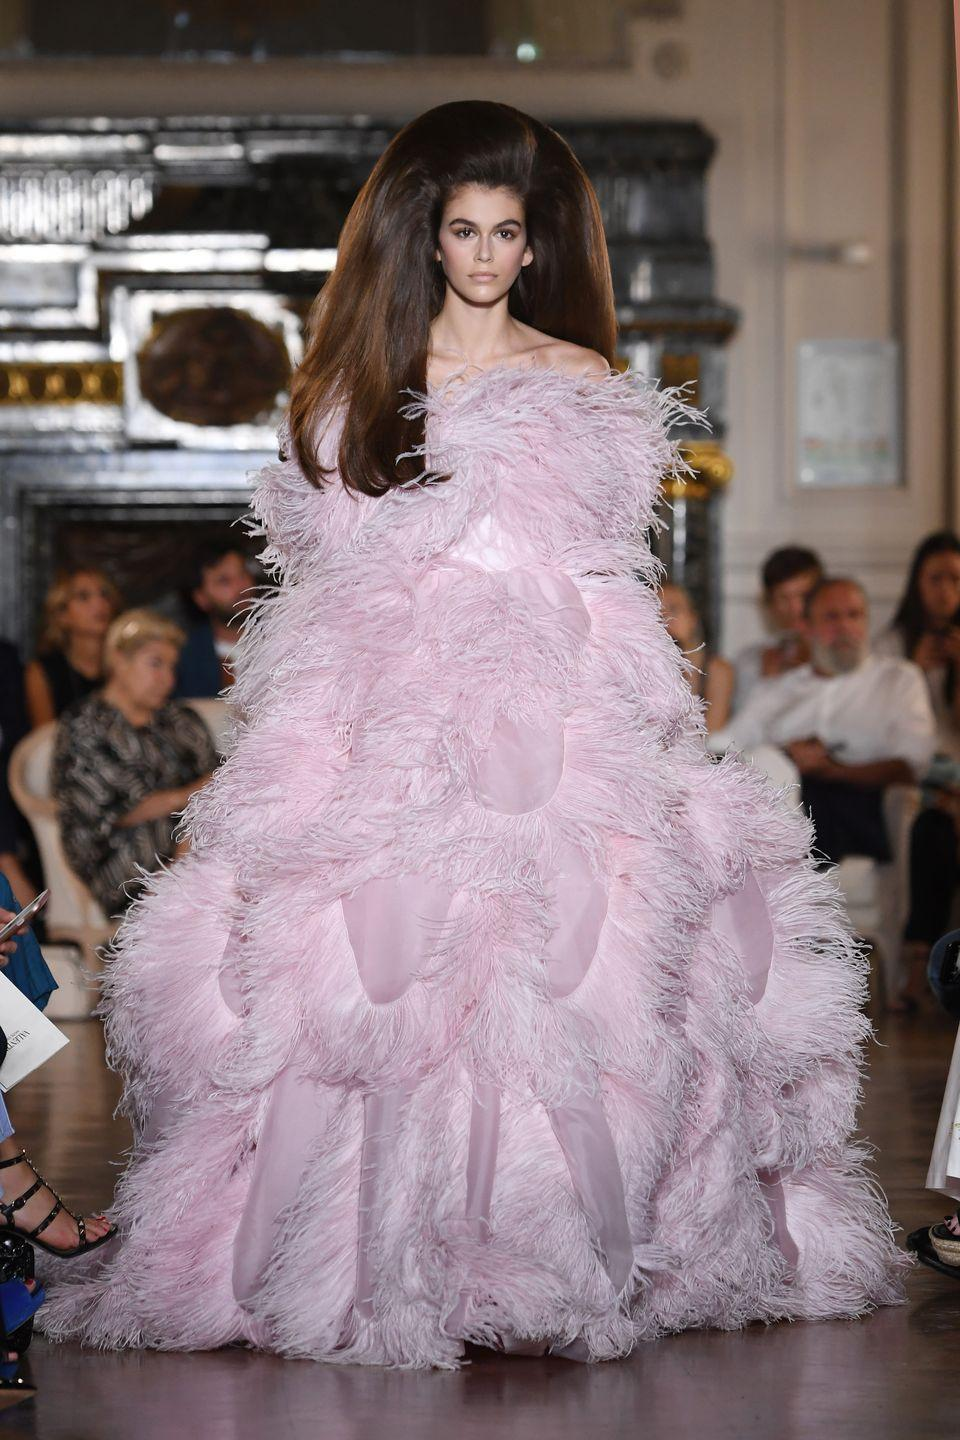 <p>The teenager looked stunning in a feathered pink gown at the Valentino fashion show during Haute Couture AW18/19 in Paris, July 2018</p>